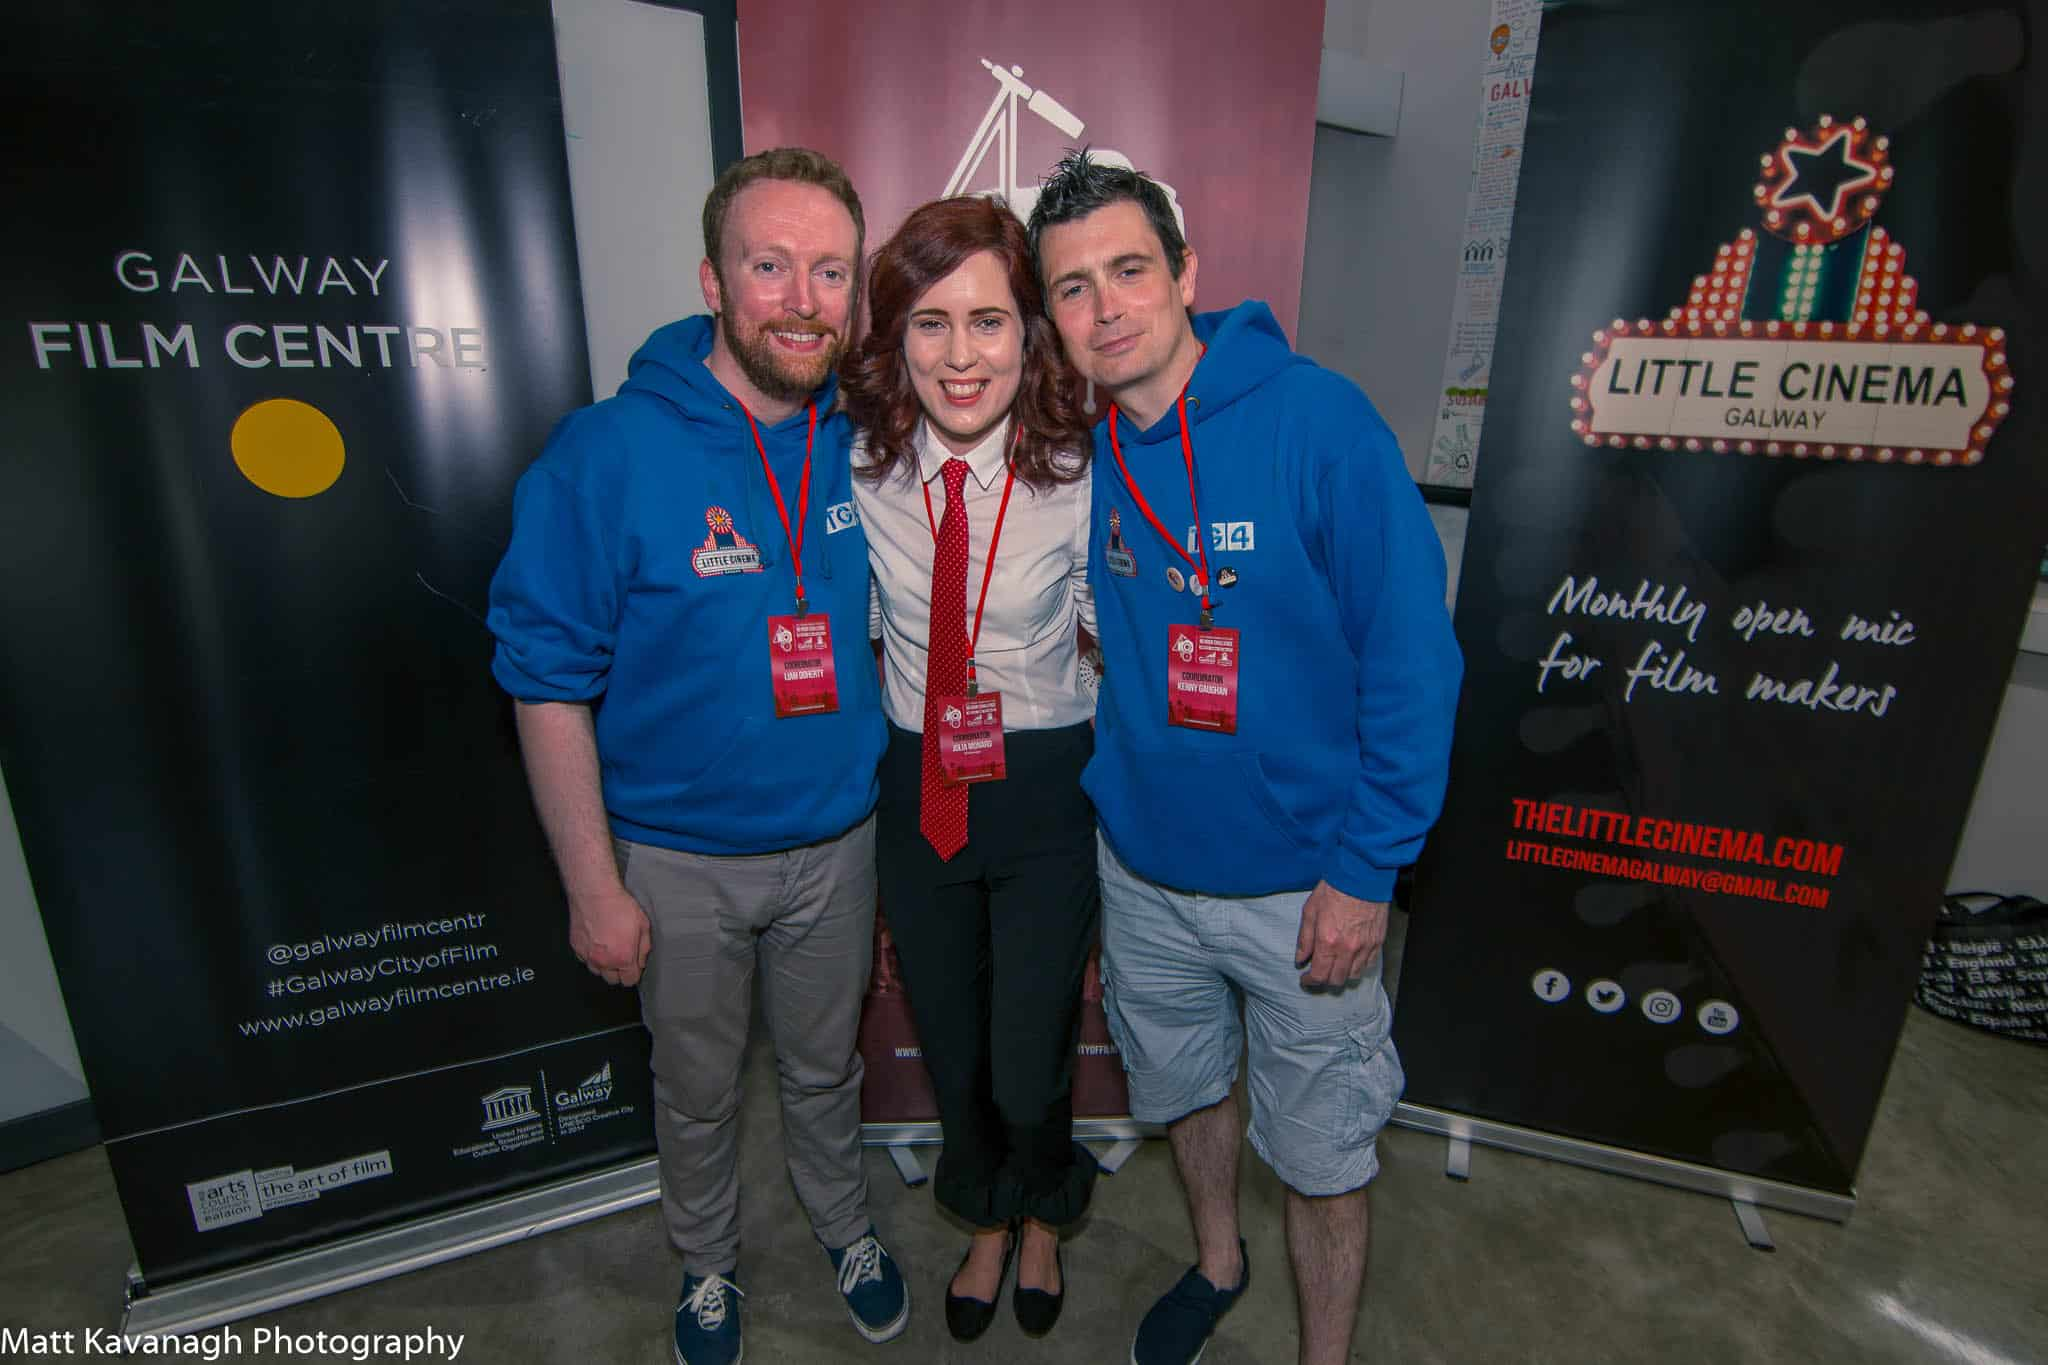 Photos from Launch of the Little Cinema & Galway City of Film 48 Hour Challenge